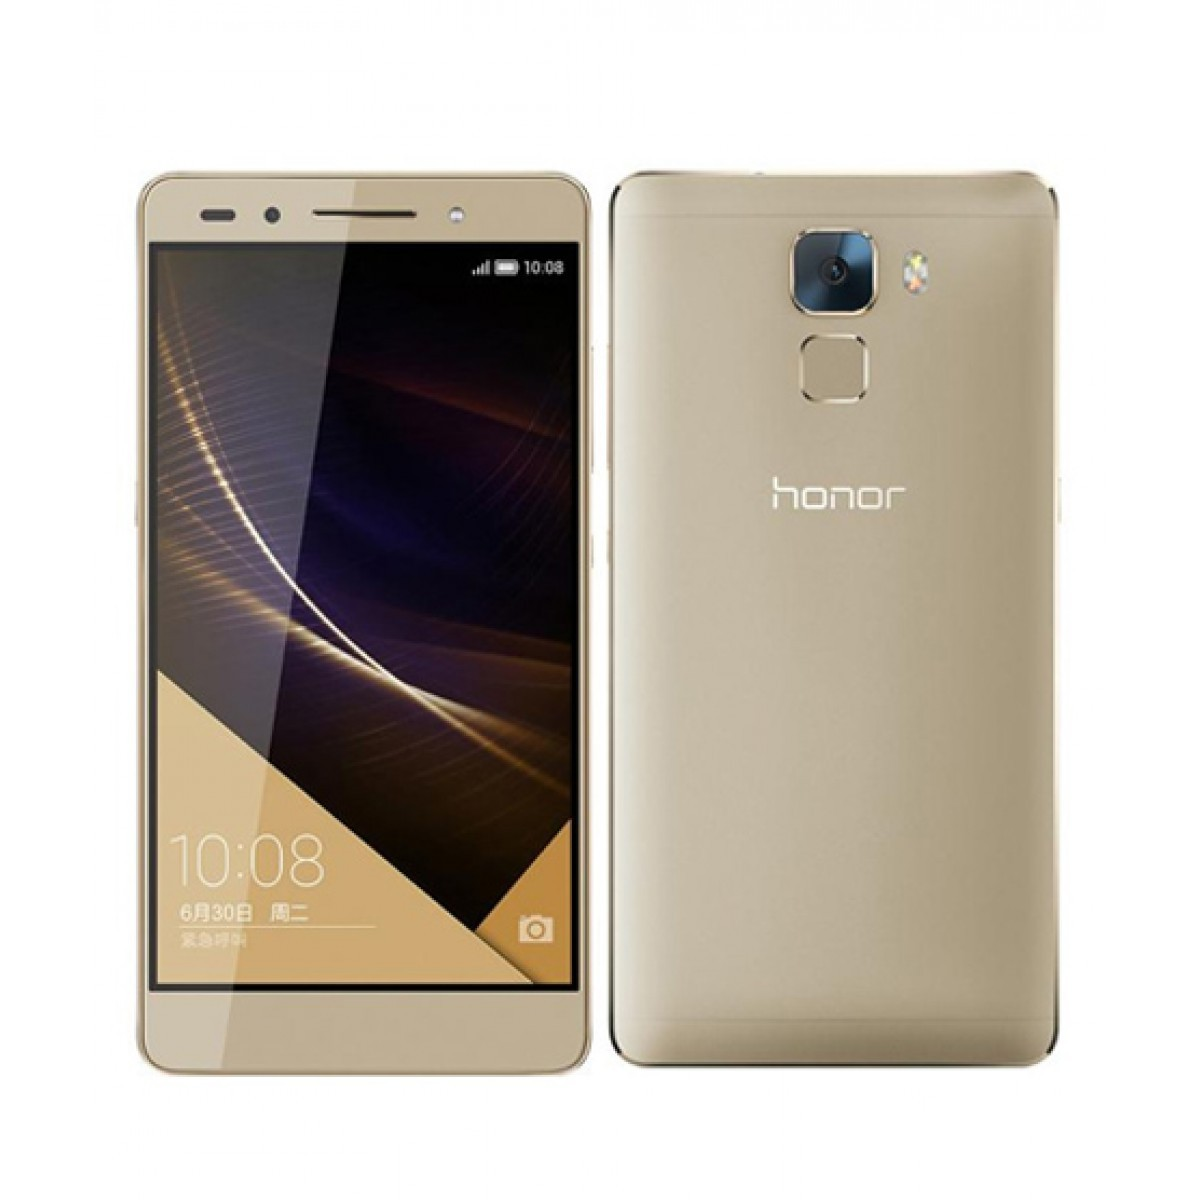 unlocked huawei honor 7 gold 3gb ram 16gb rom 20mp android 5.0 4g lte smartphone